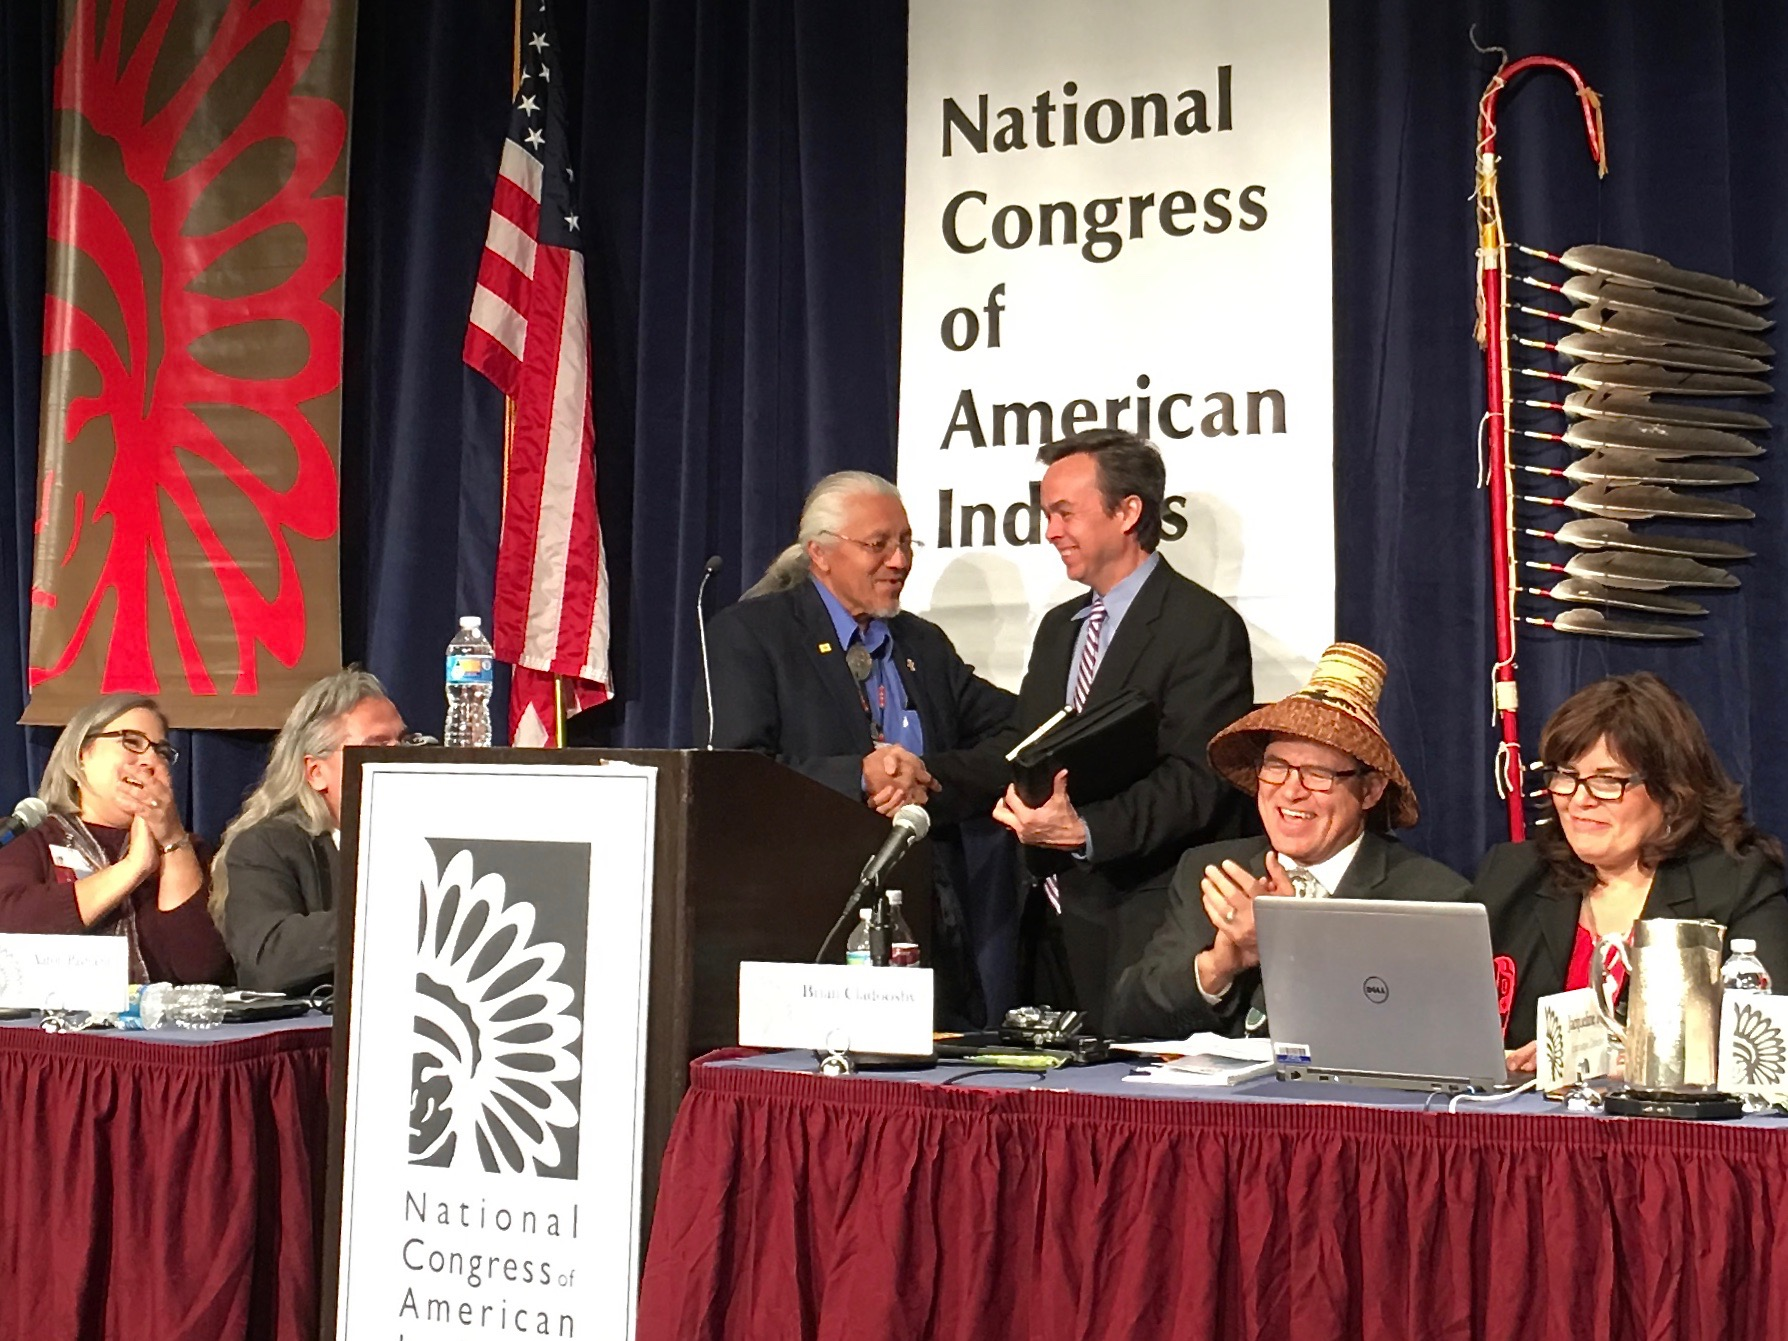 Bureau of Indian Affairs delays changes to land-into-trust process